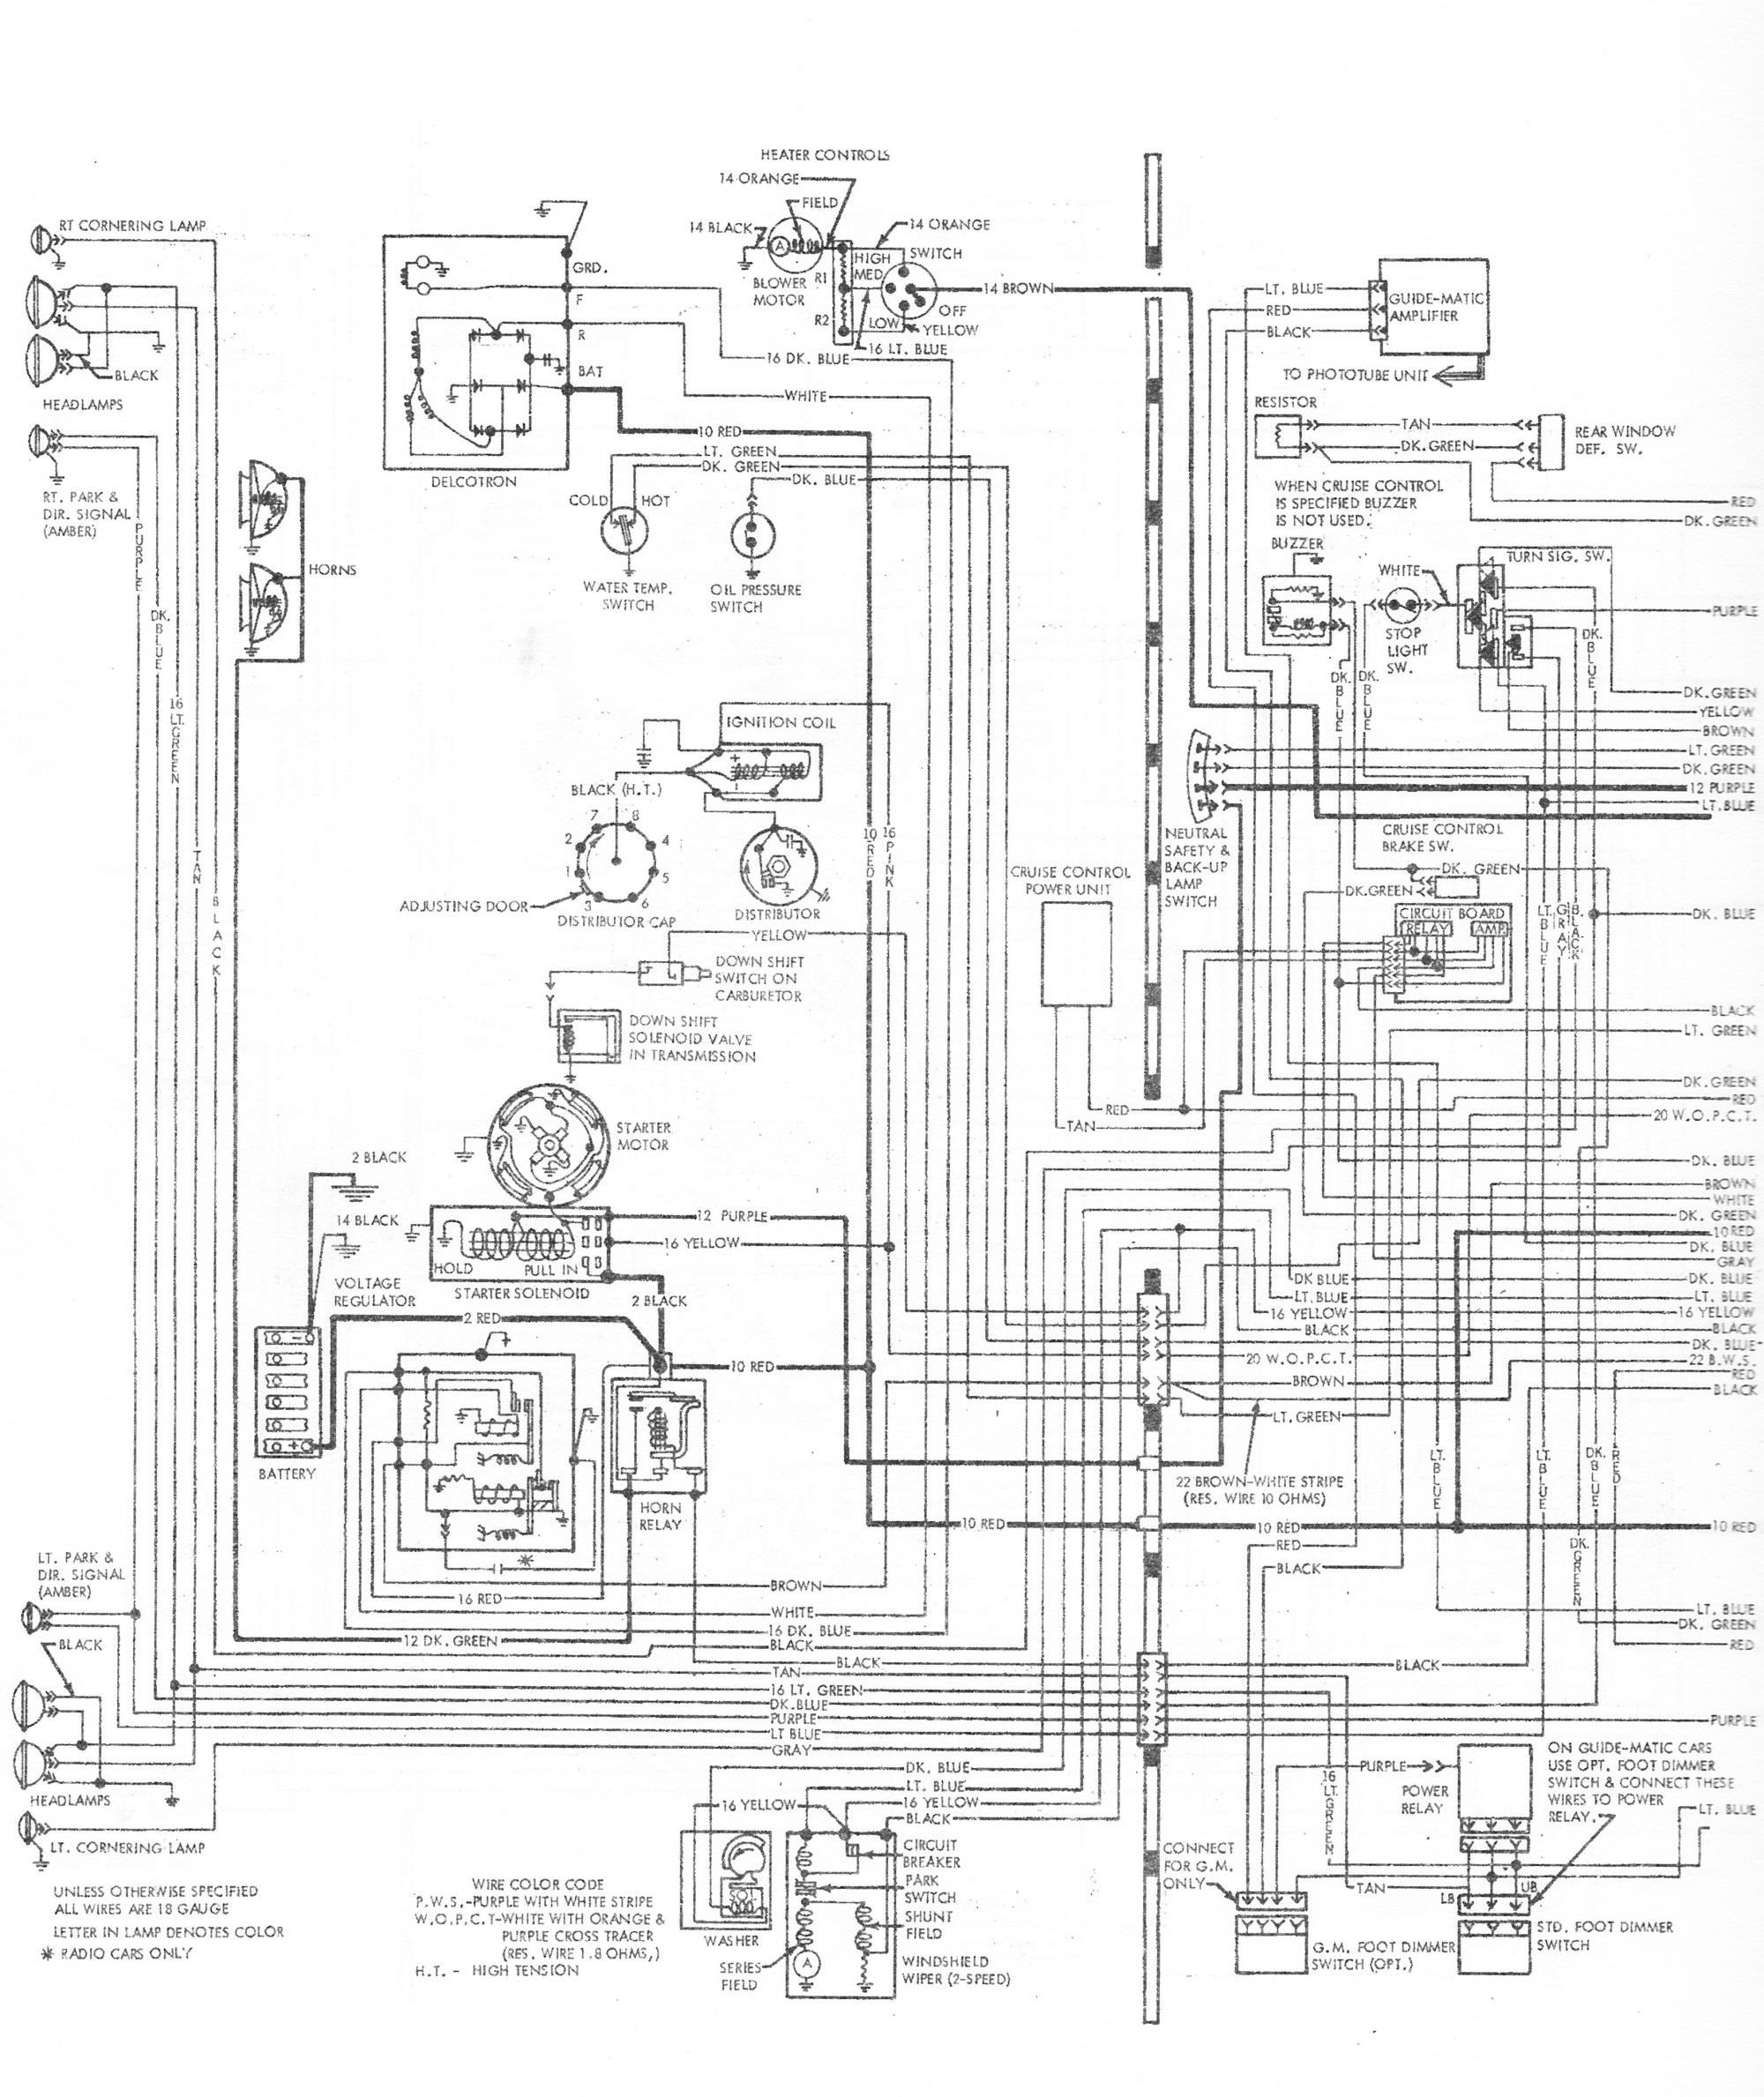 hight resolution of 1969 buick riviera wiring schematic circuit diagram symbols u2022 1965 buick gs 1965 buick riviera wiring harness